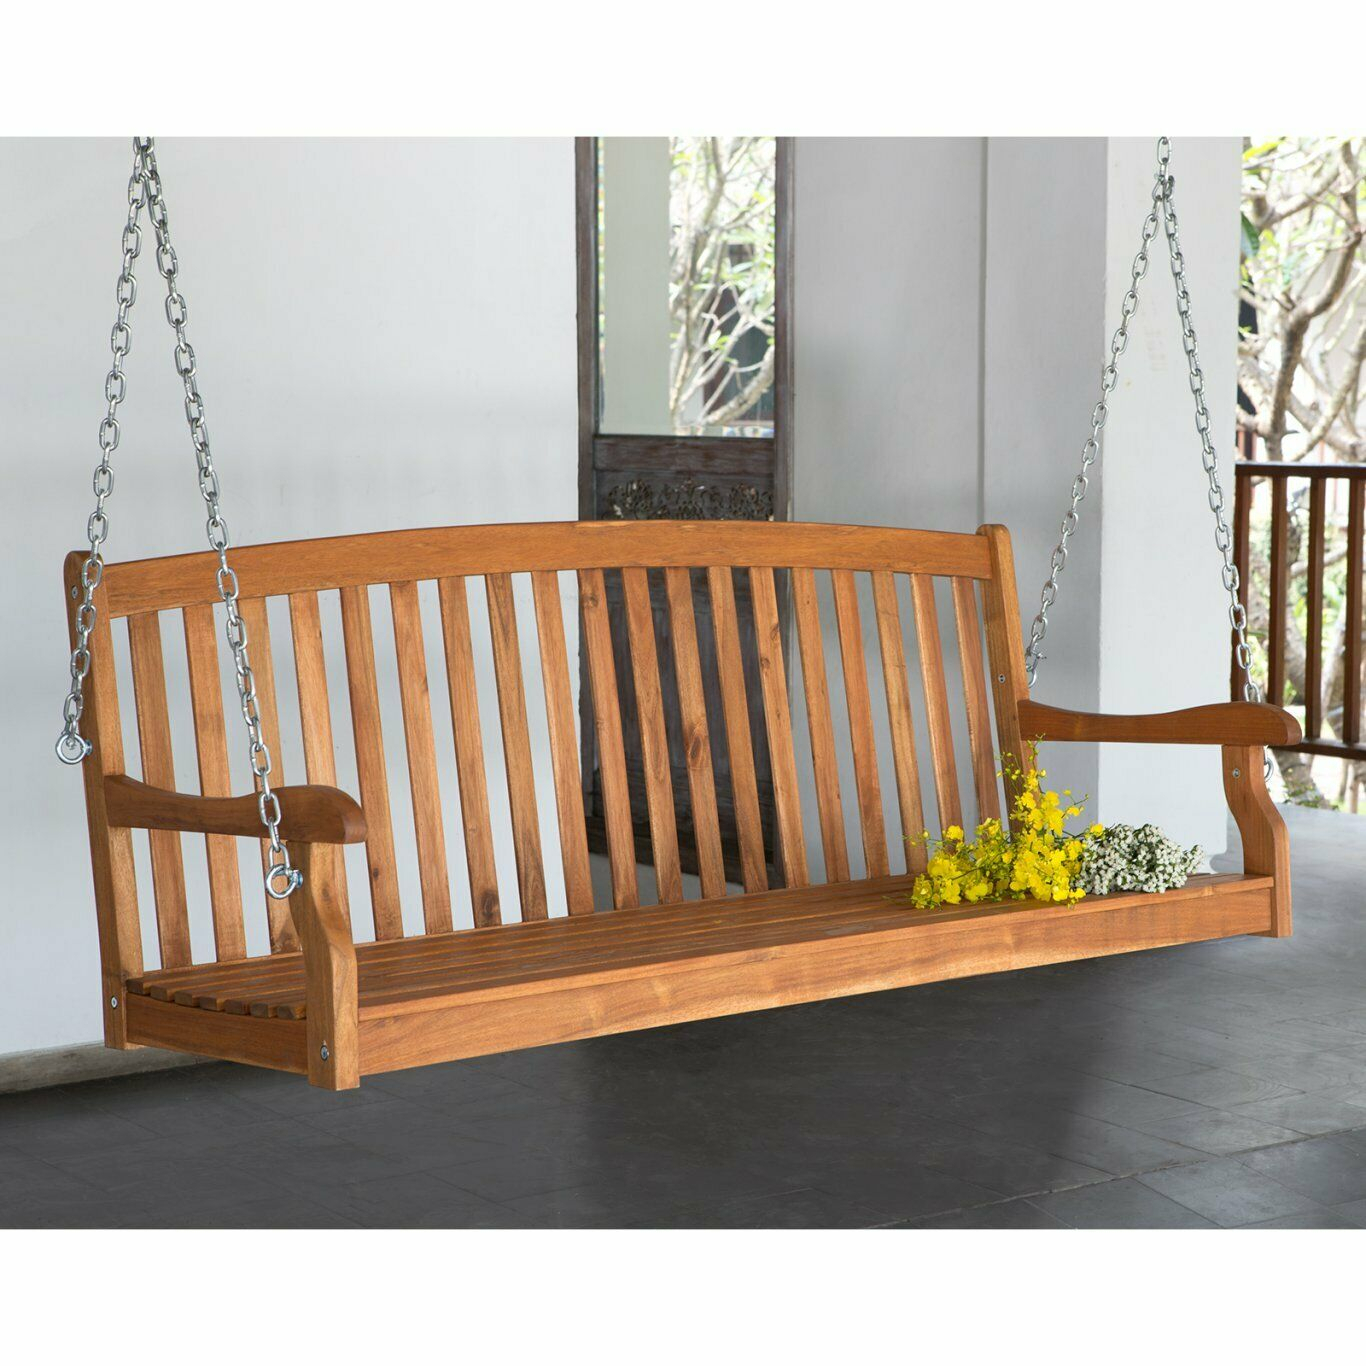 5 Ft Wood Porch Swing Slat Back 2 Person Bench Seat Loveseat Tree Furniture New Inside 2 Person White Wood Outdoor Swings (View 12 of 25)